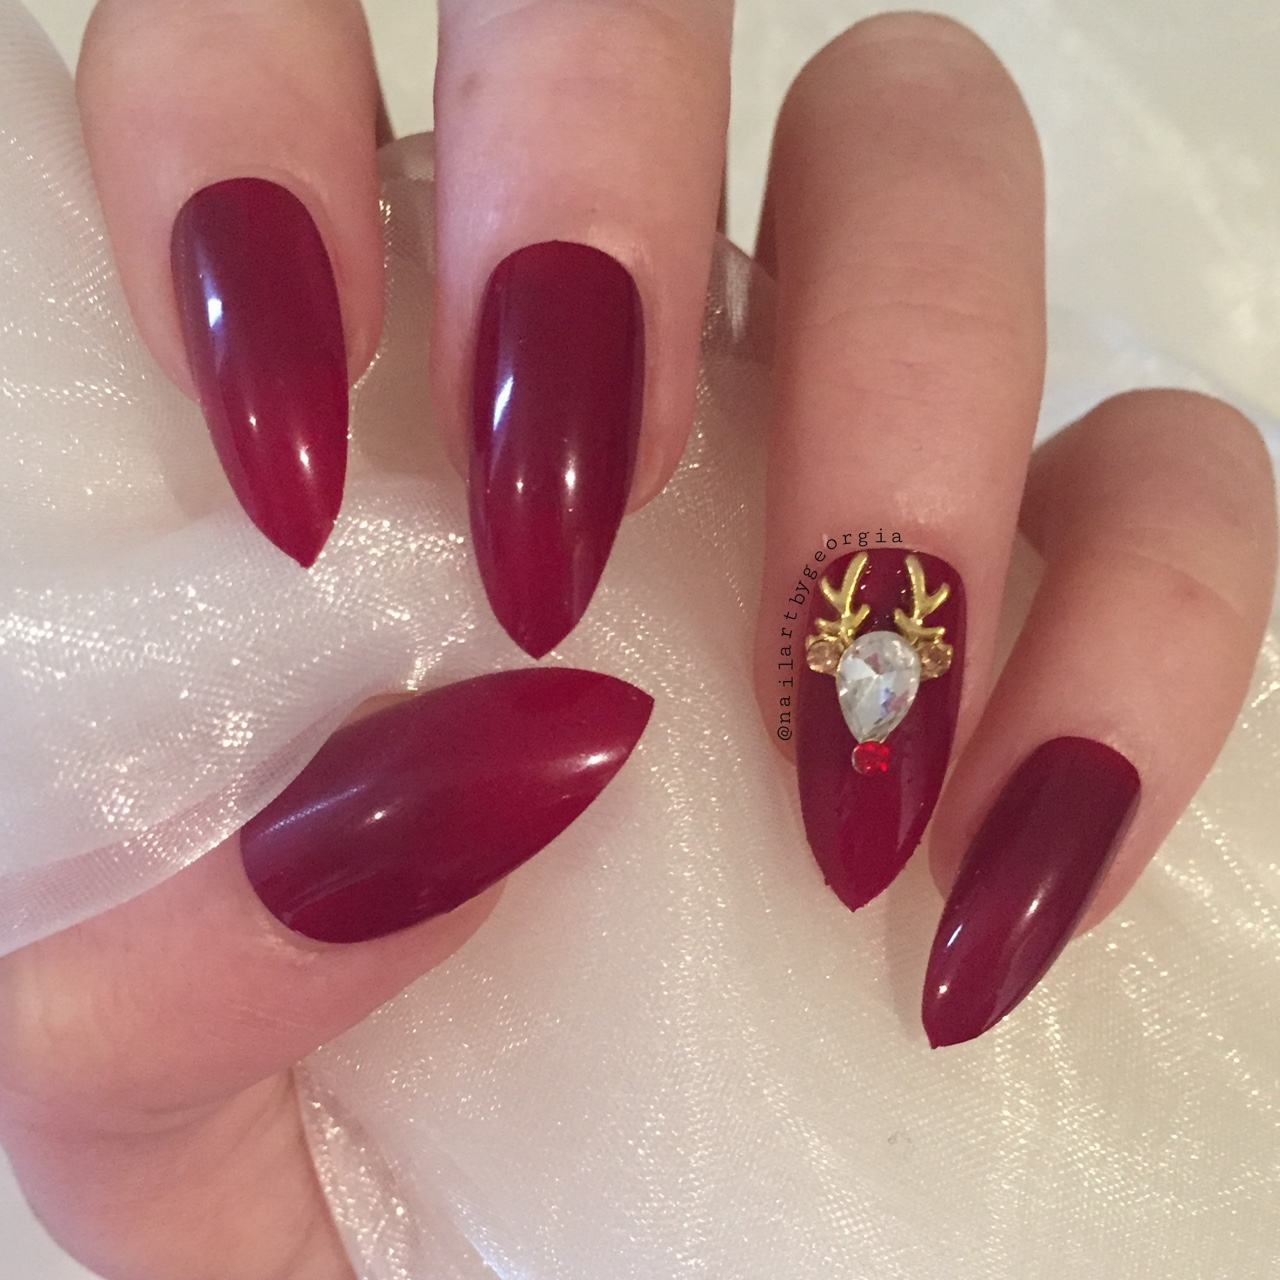 Christmas Stiletto Nails.Red Christmas Stiletto Nails With Reindeer 3d Depop